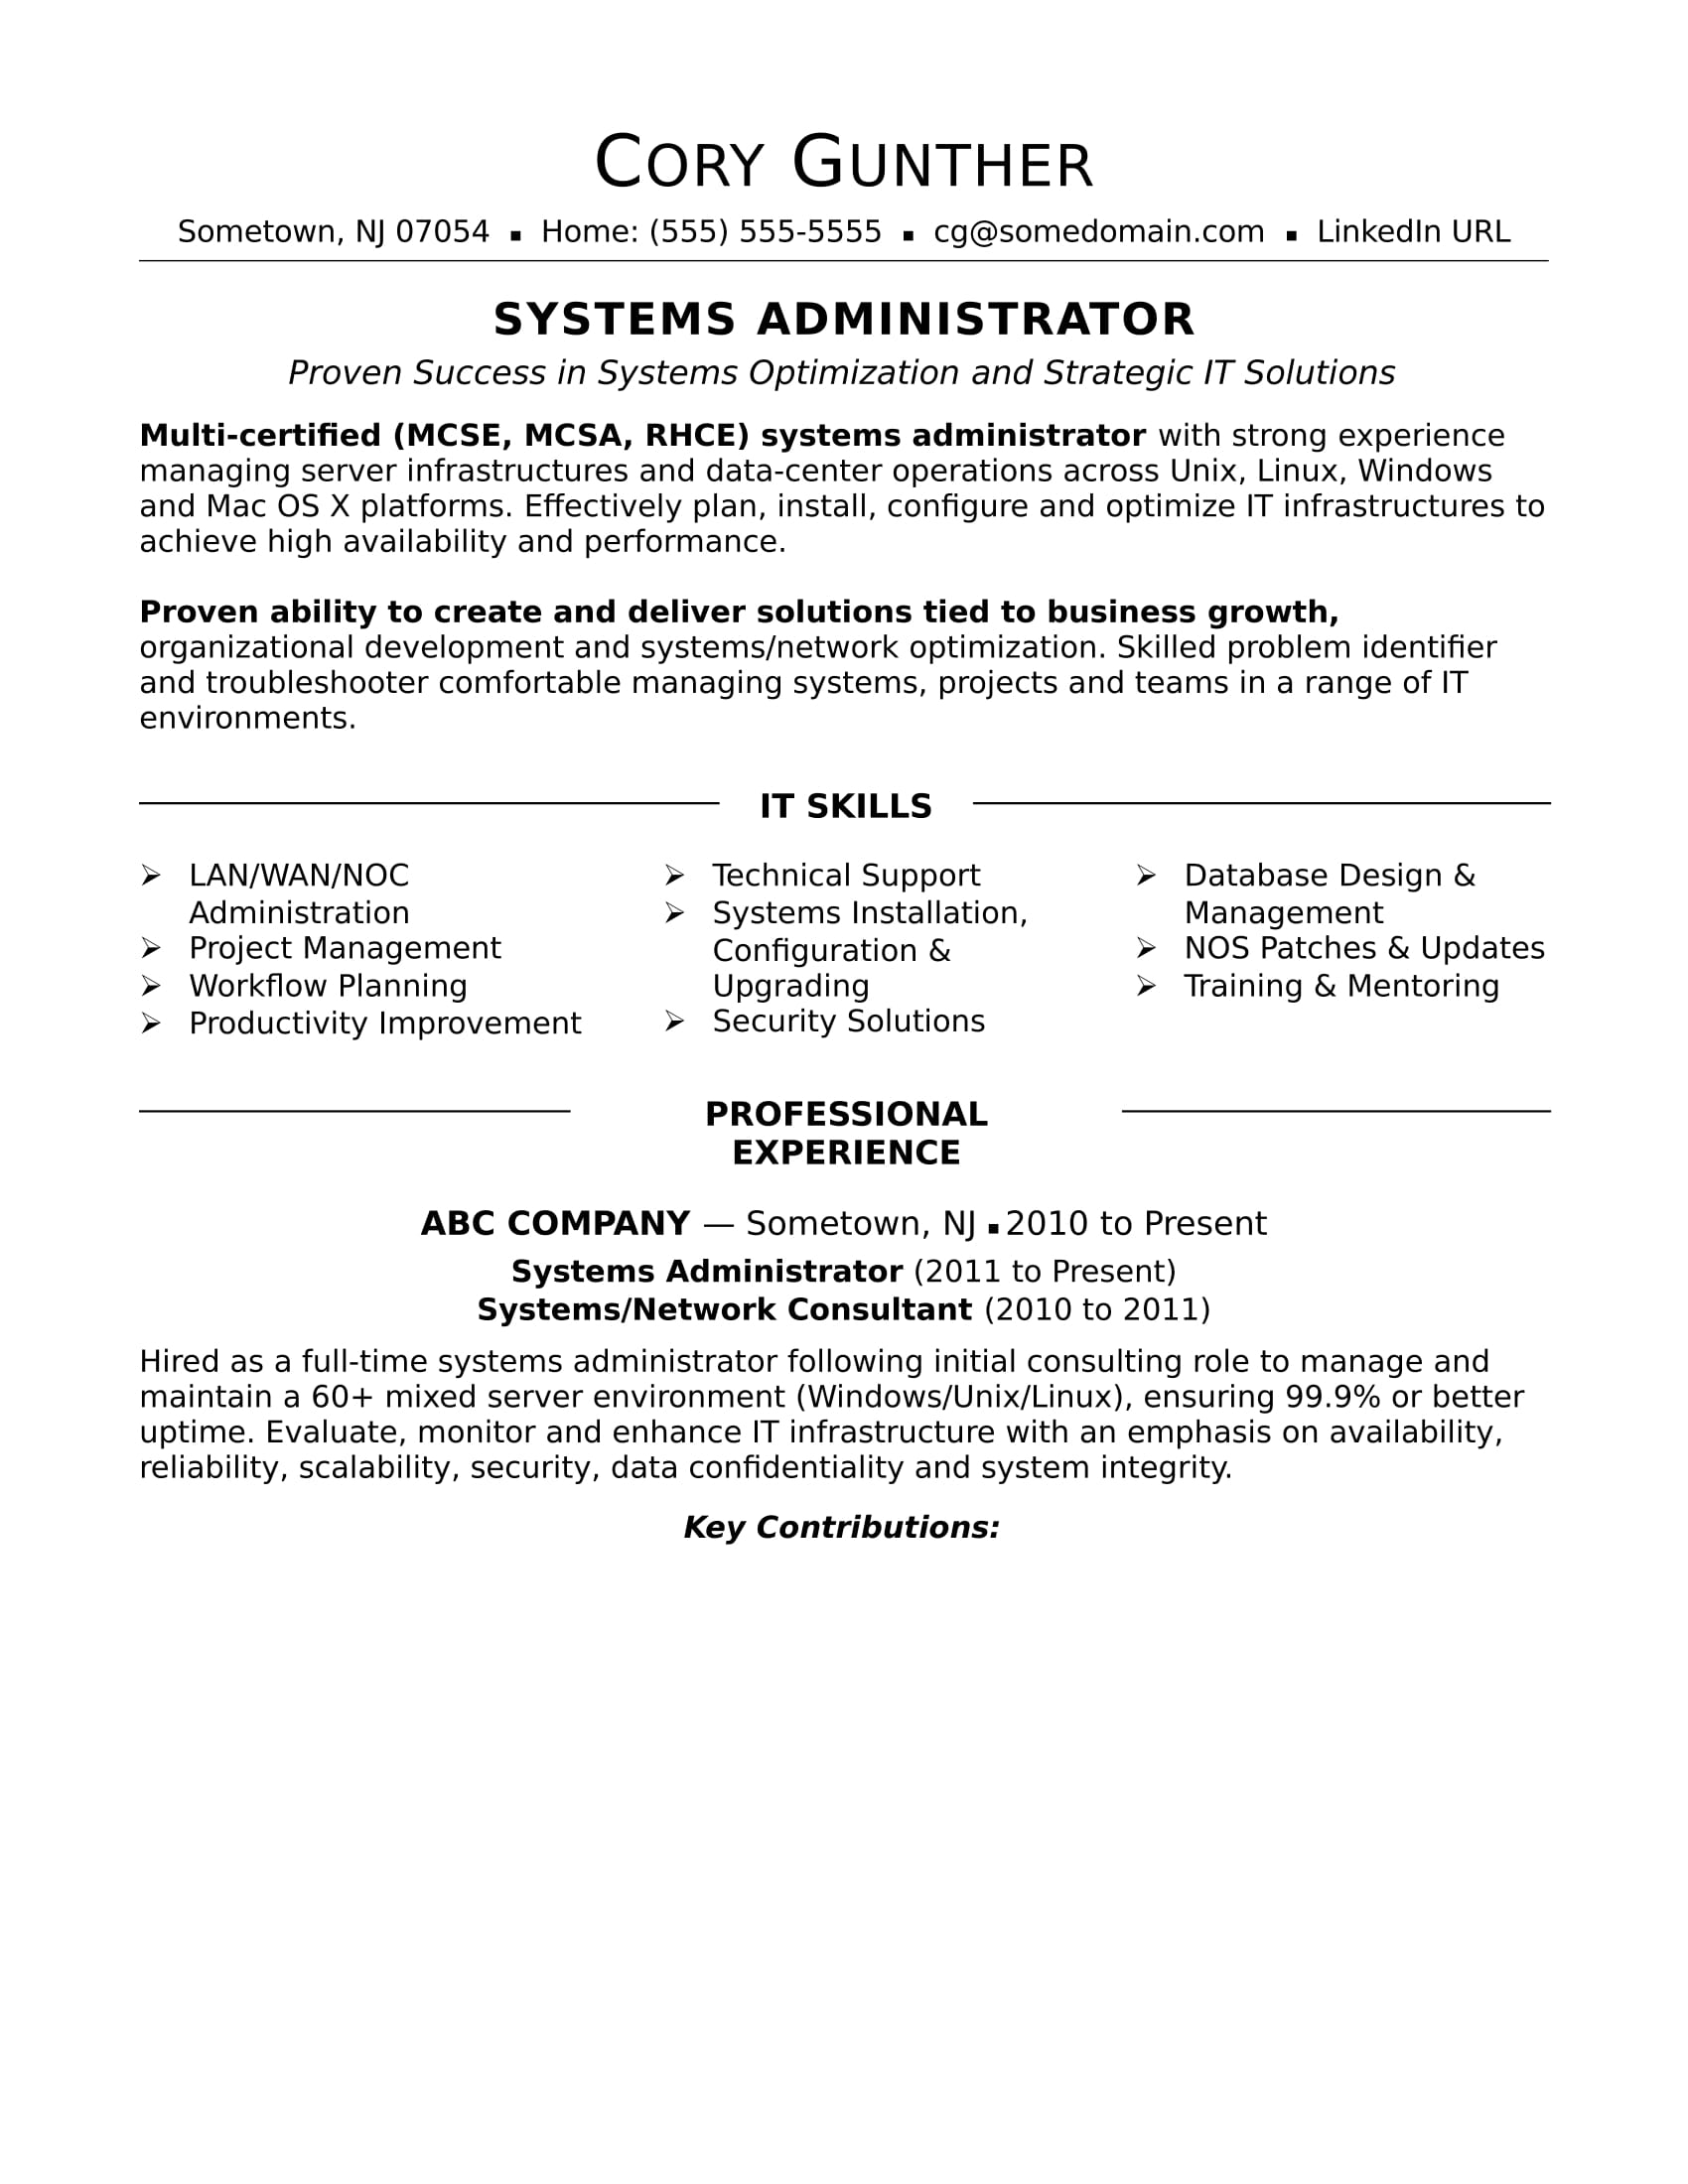 sample resume for an experienced systems administrator monster server responsibility sap Resume Server Responsibility For Resume